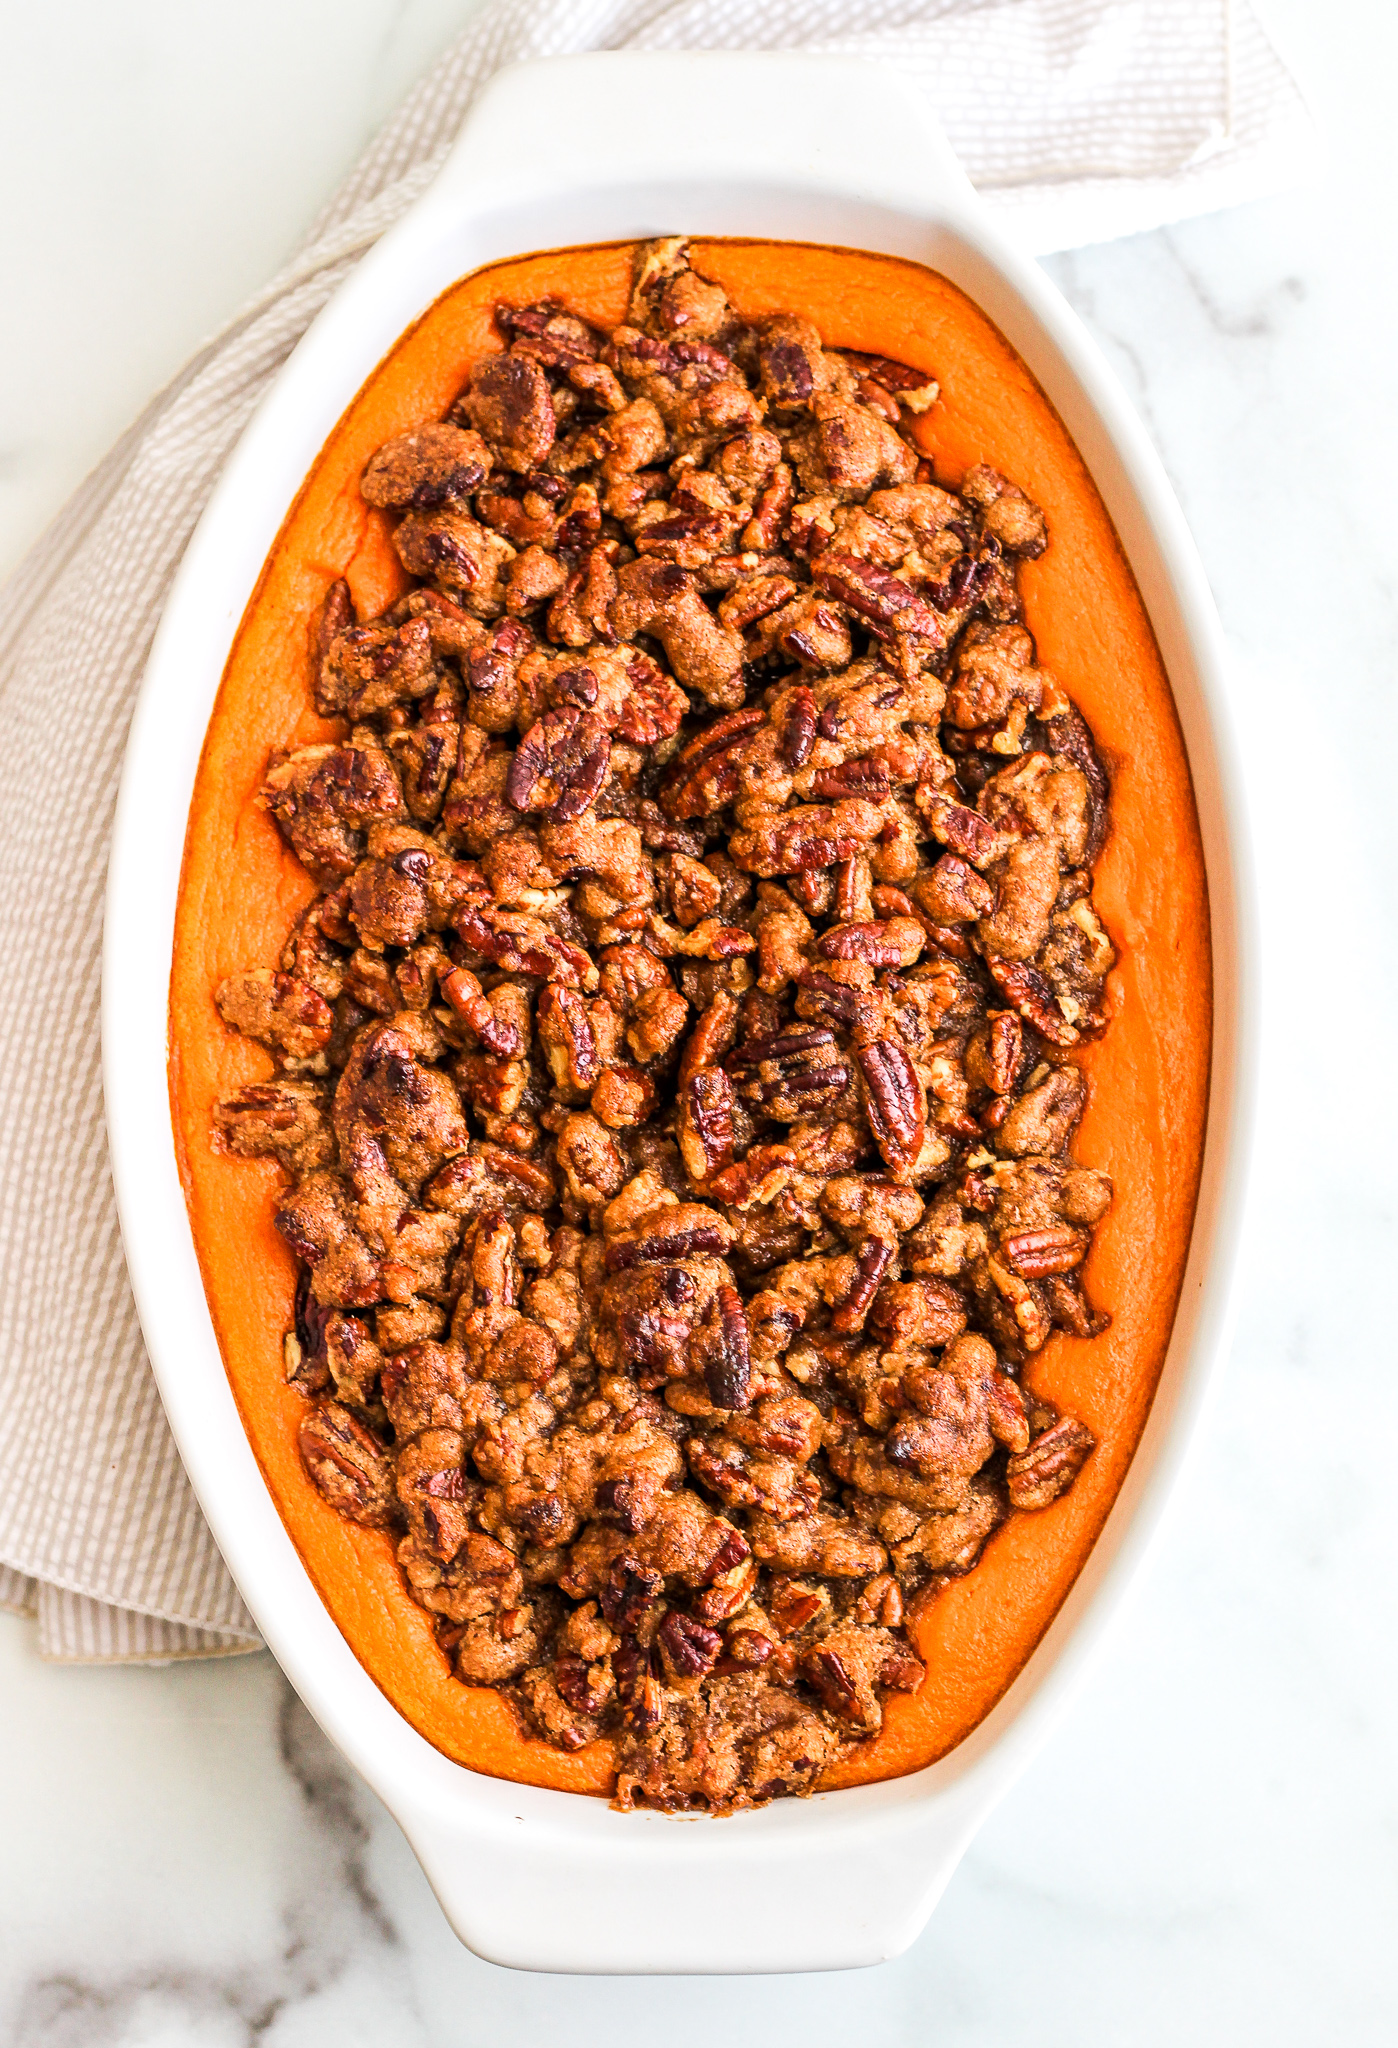 Sweet Potato Casserole topped with Pecan topping in a white serving dish